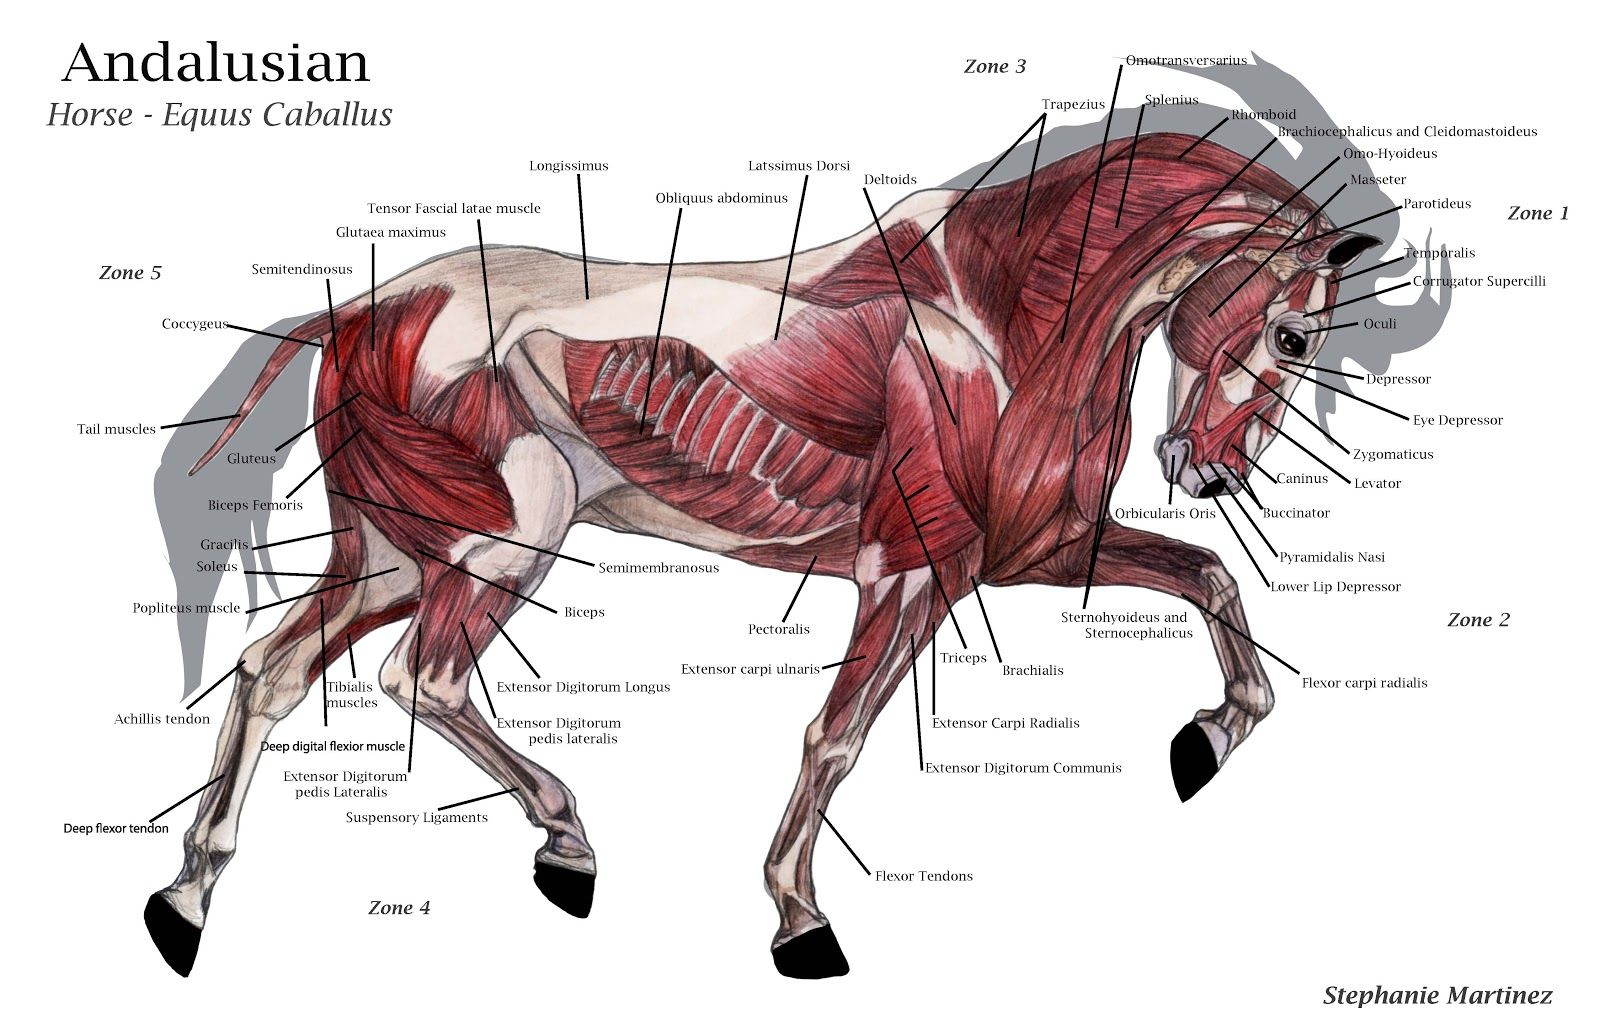 horse anatomy model - Google Search | Equiden | Pinterest | Horse ...